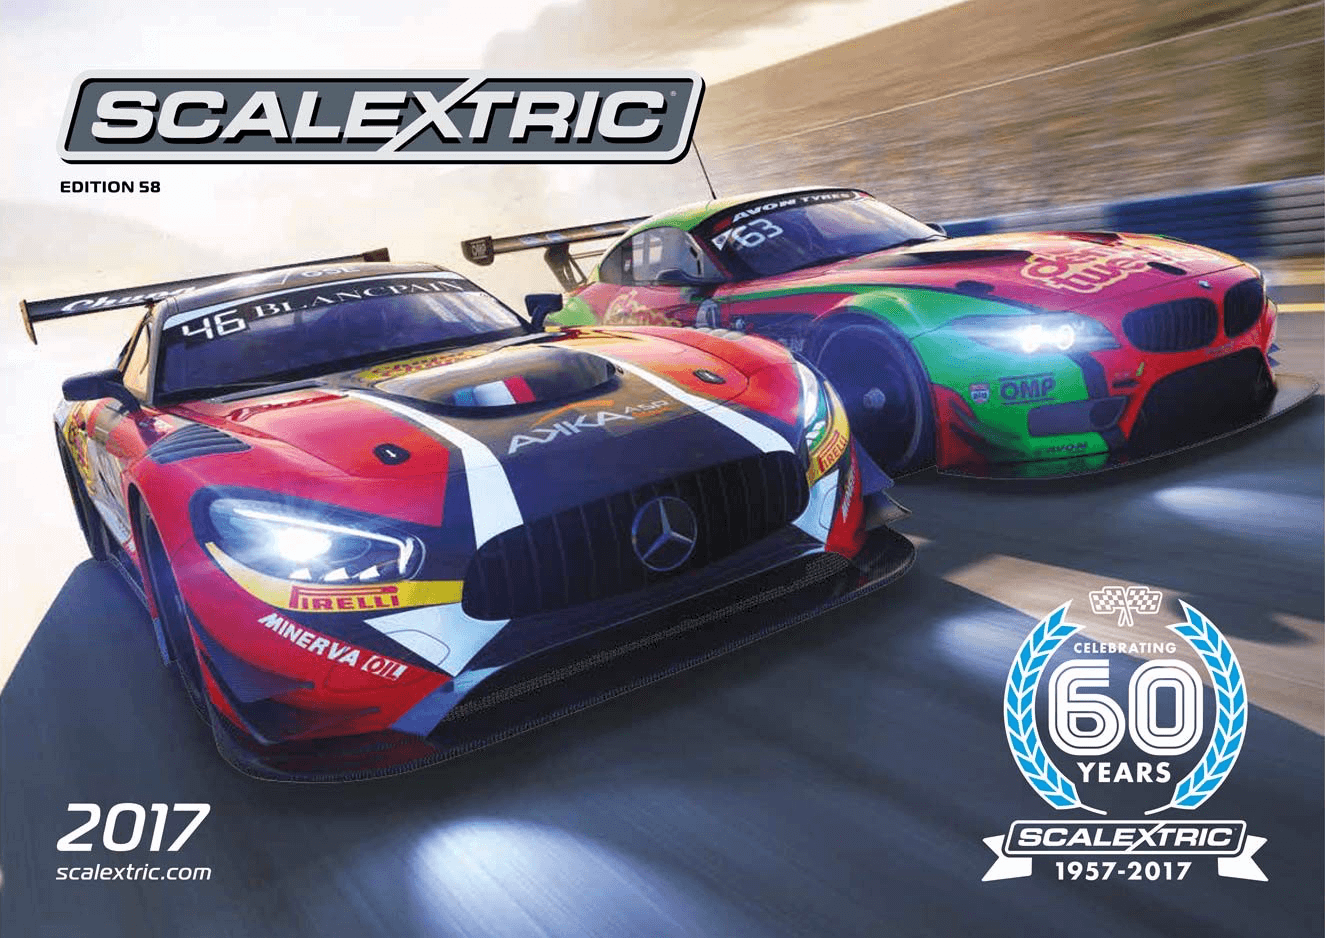 C8181 Scalextric 2017 Product Catalog, Edition 58